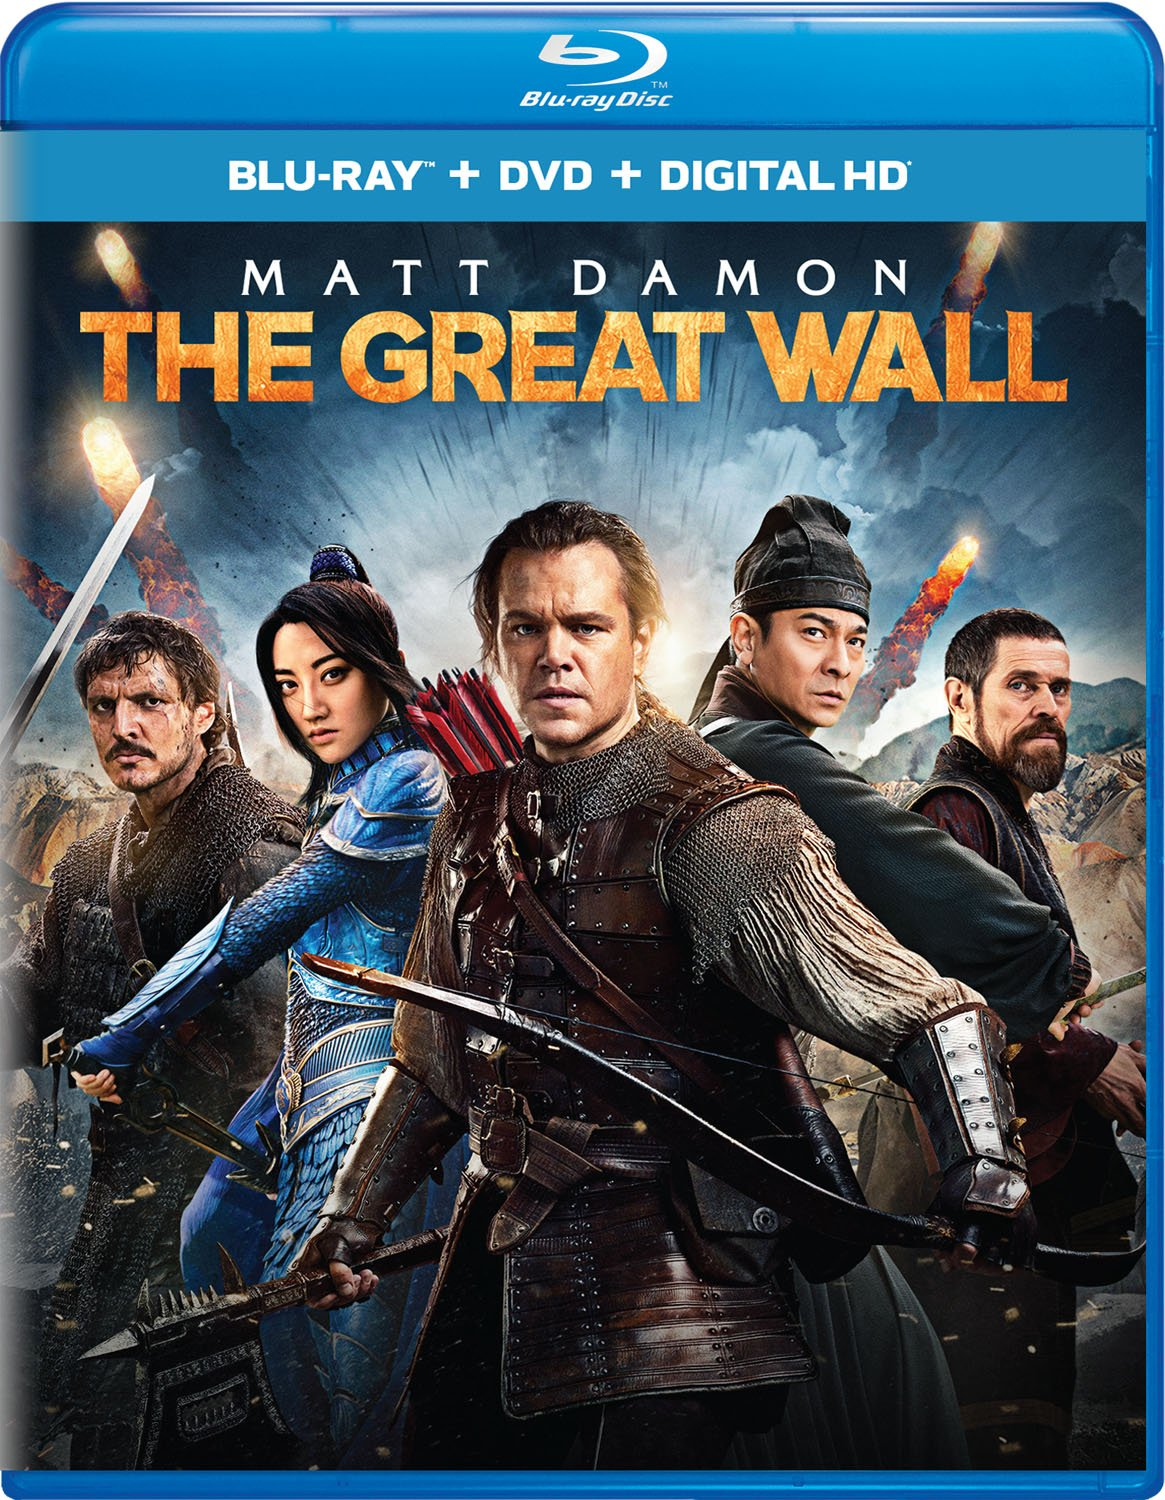 Blu-ray : The Great Wall (With DVD, Ultraviolet Digital Copy, 2 Pack, Digitally Mastered in HD, Digital Copy)